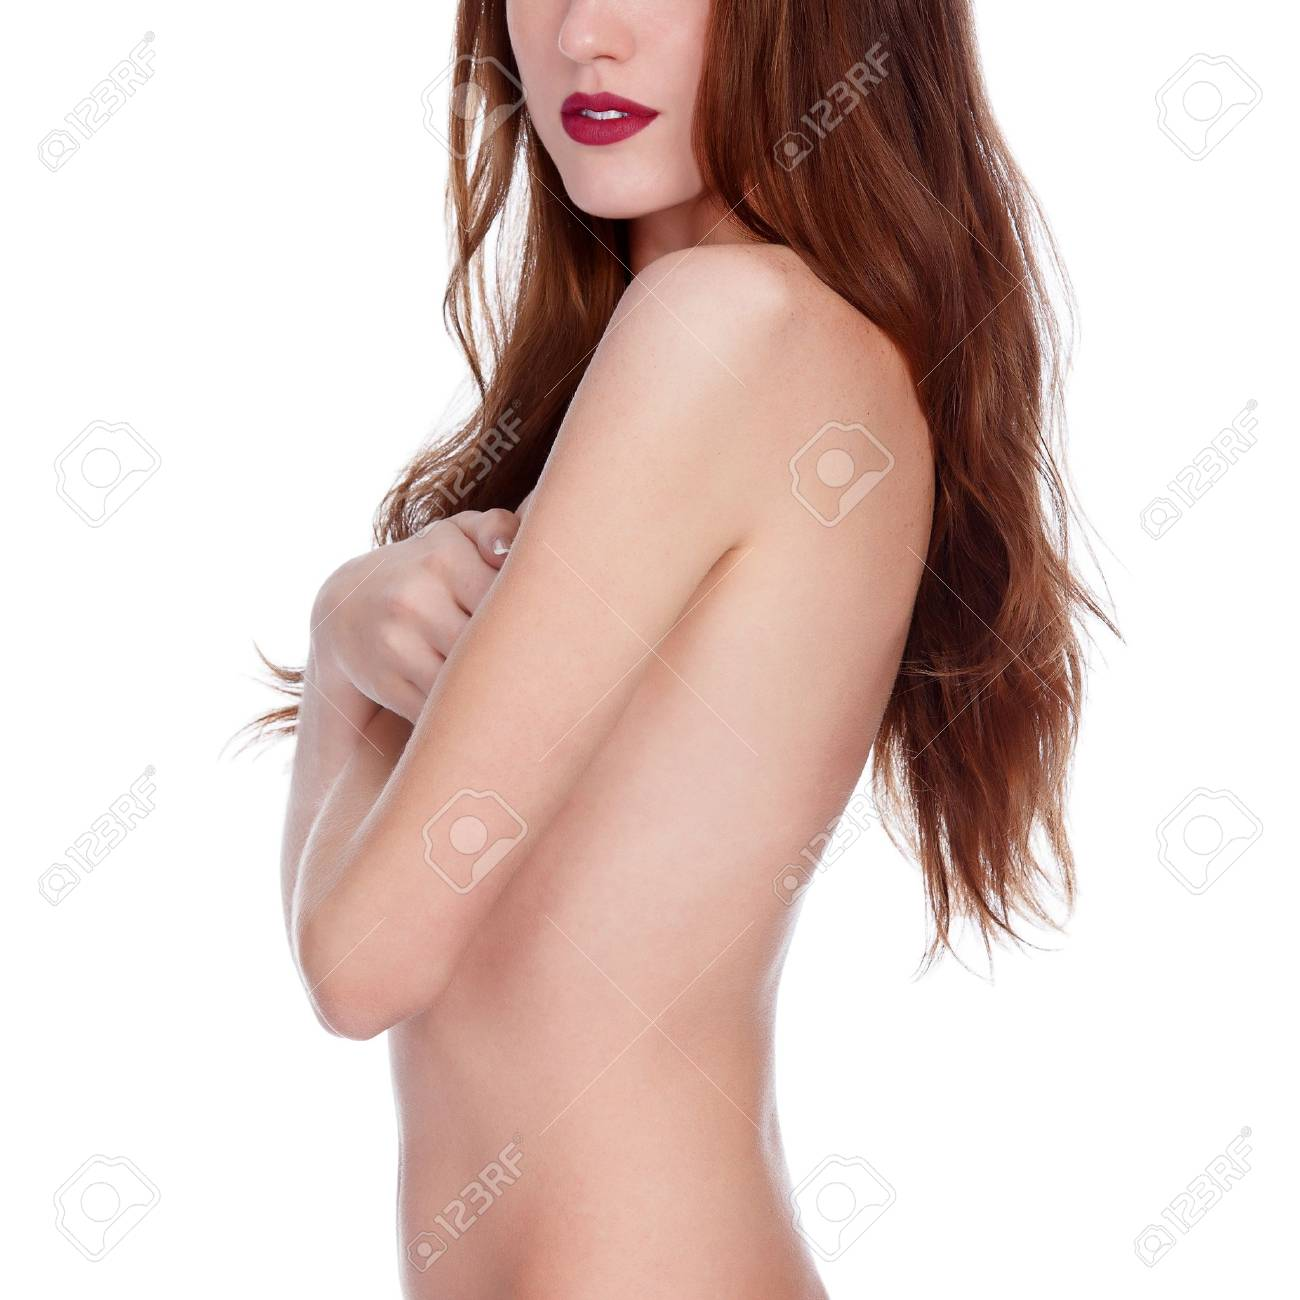 beautiful woman with long hair, white background. Stock Photo - 16793186